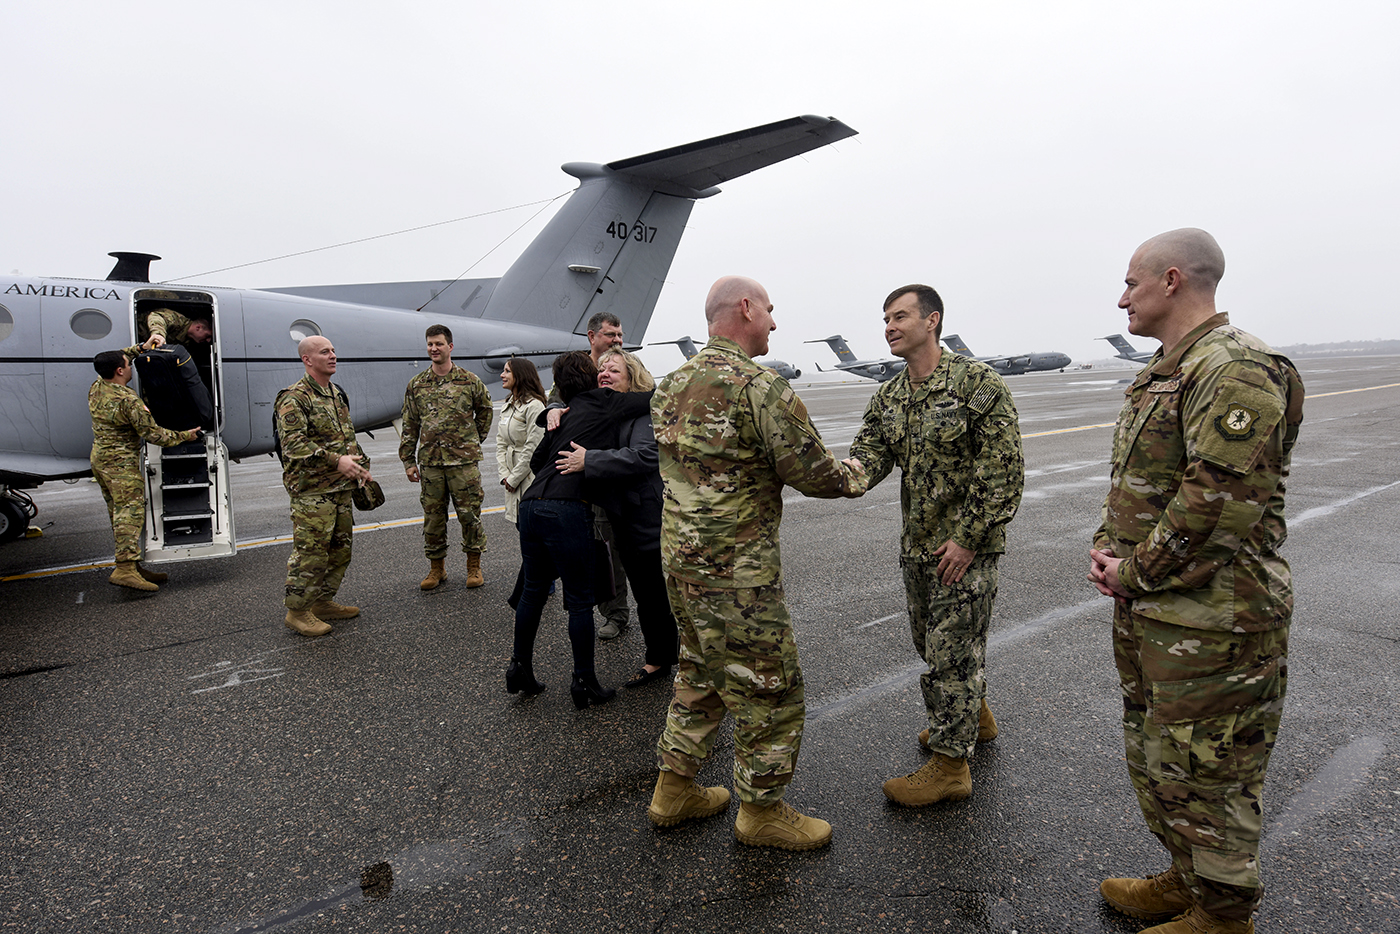 Maj. Gen. Sam Barrett greets Joint Base Charleston leadership. The 18th Air Force, headquartered at Scott Air Force Base, Ill., oversees the base's 437th Airlift Wing. (Photo/Airman 1st Class Allison Payne for the Air Force)